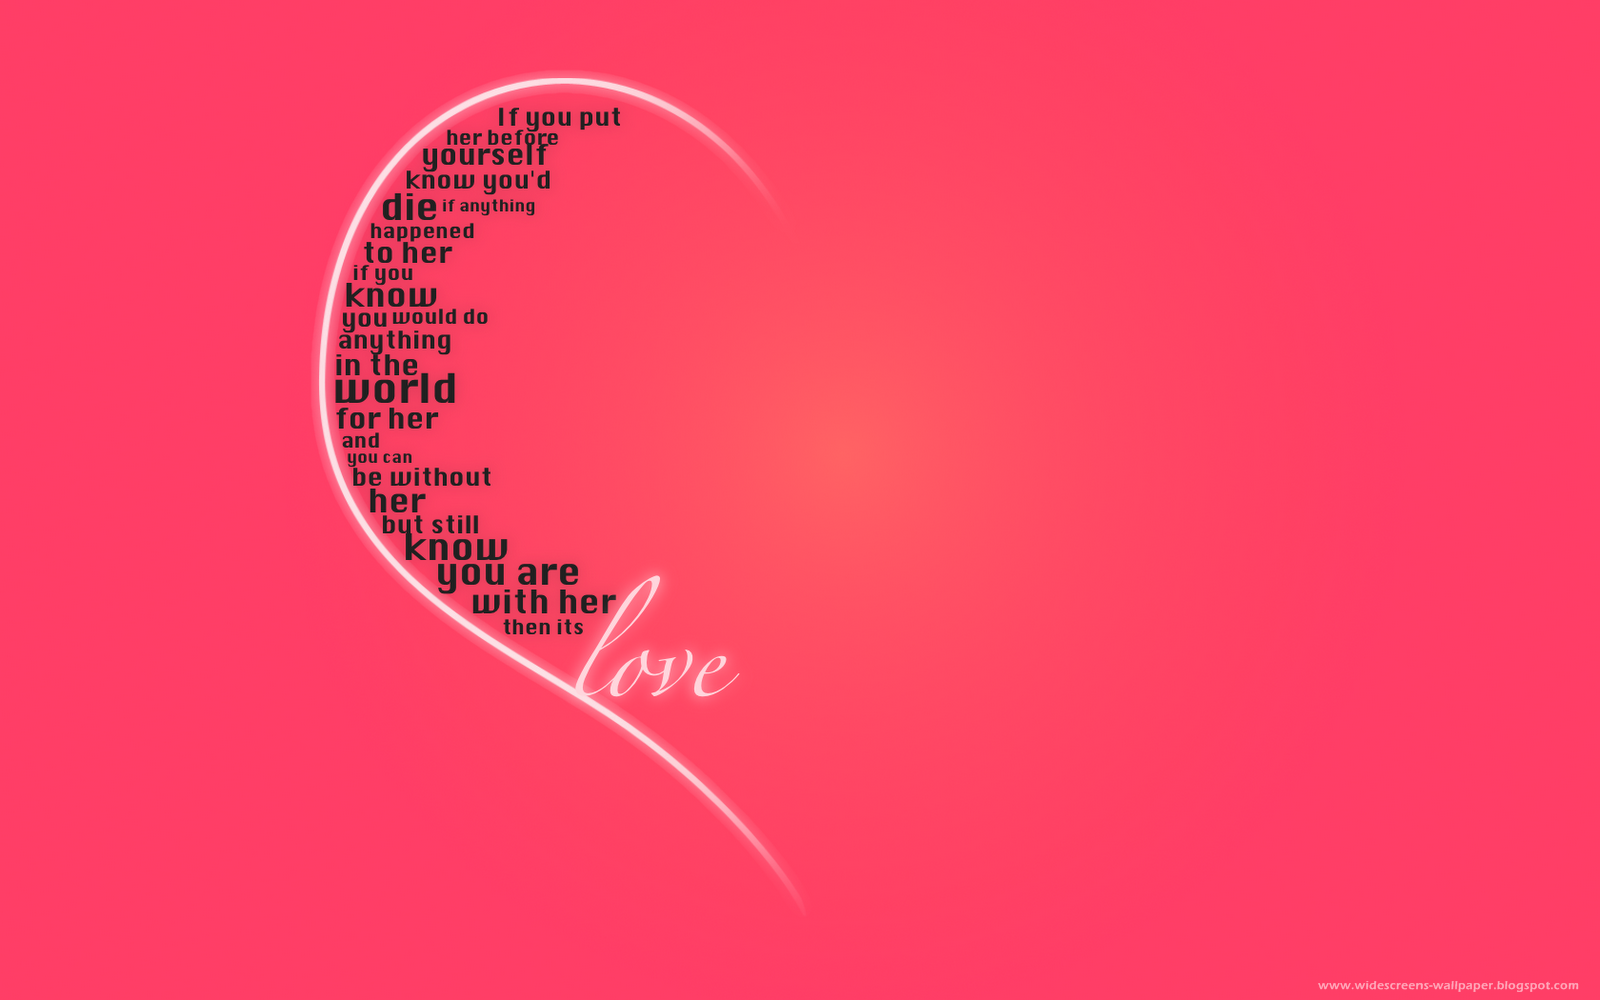 Top 3 Quotes About Love : ... 31 - 45 out of 75,900,000 for best true love quotes Image Search